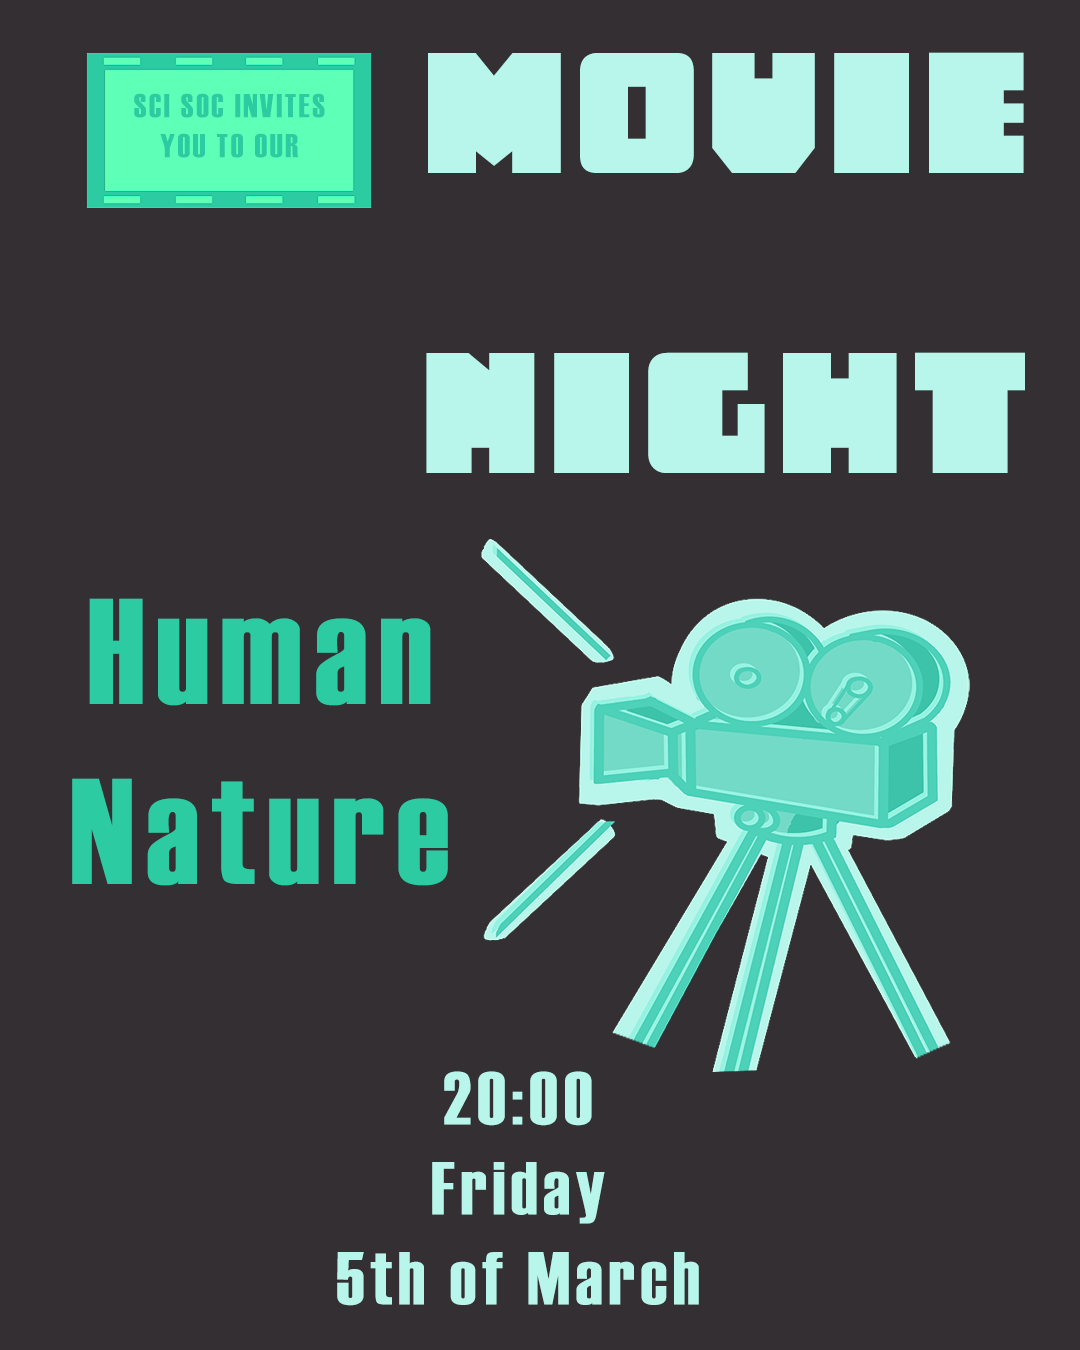 human nature movie night poster